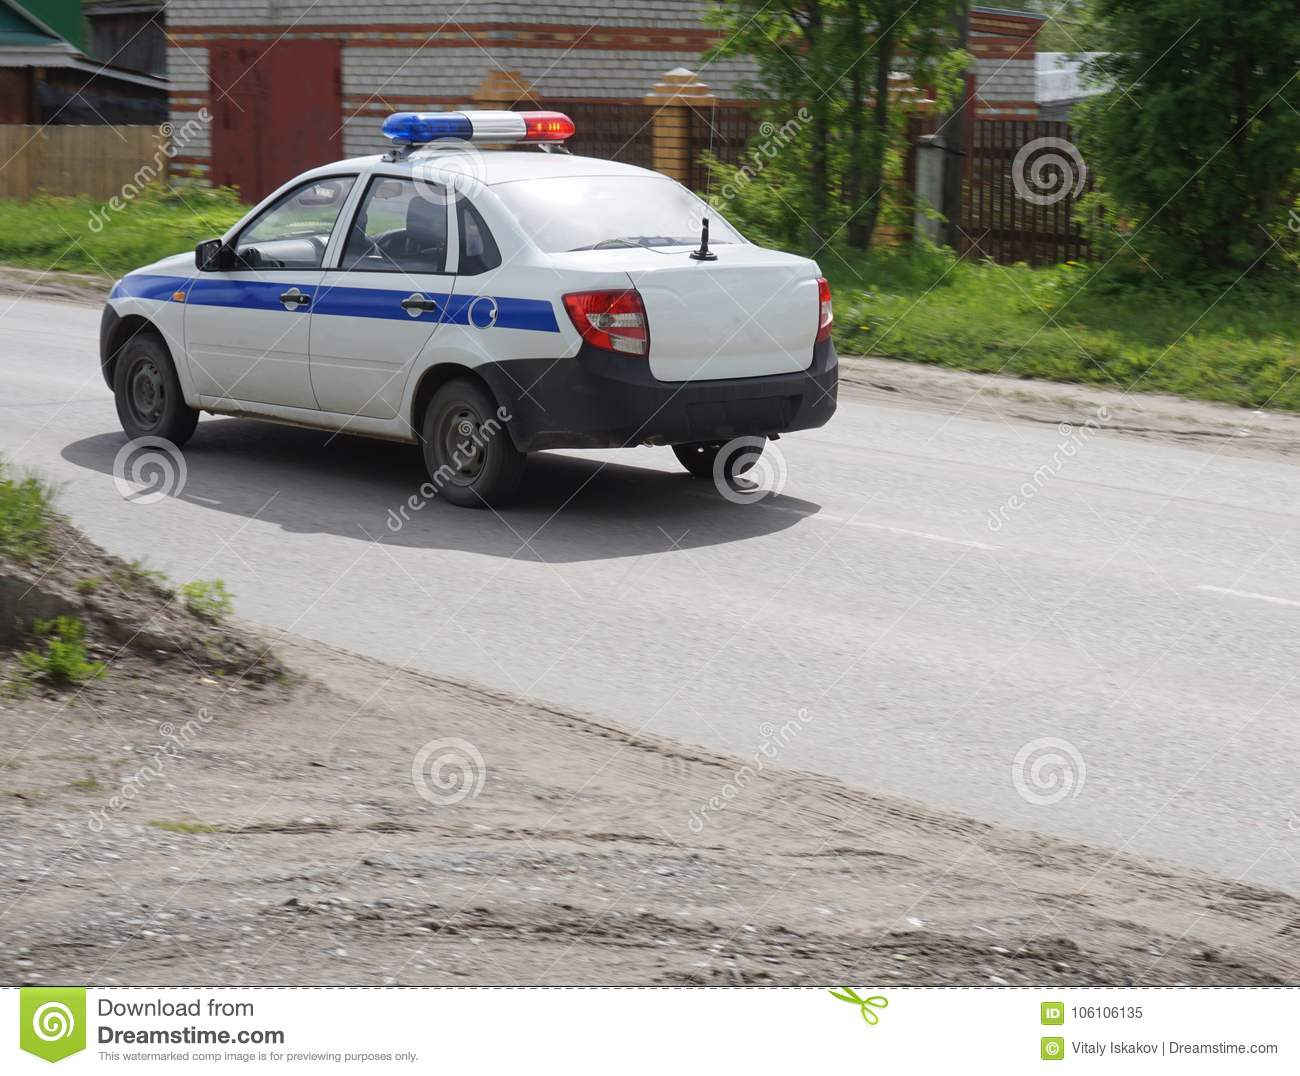 russian police car with flashing lights stock image - image of motor